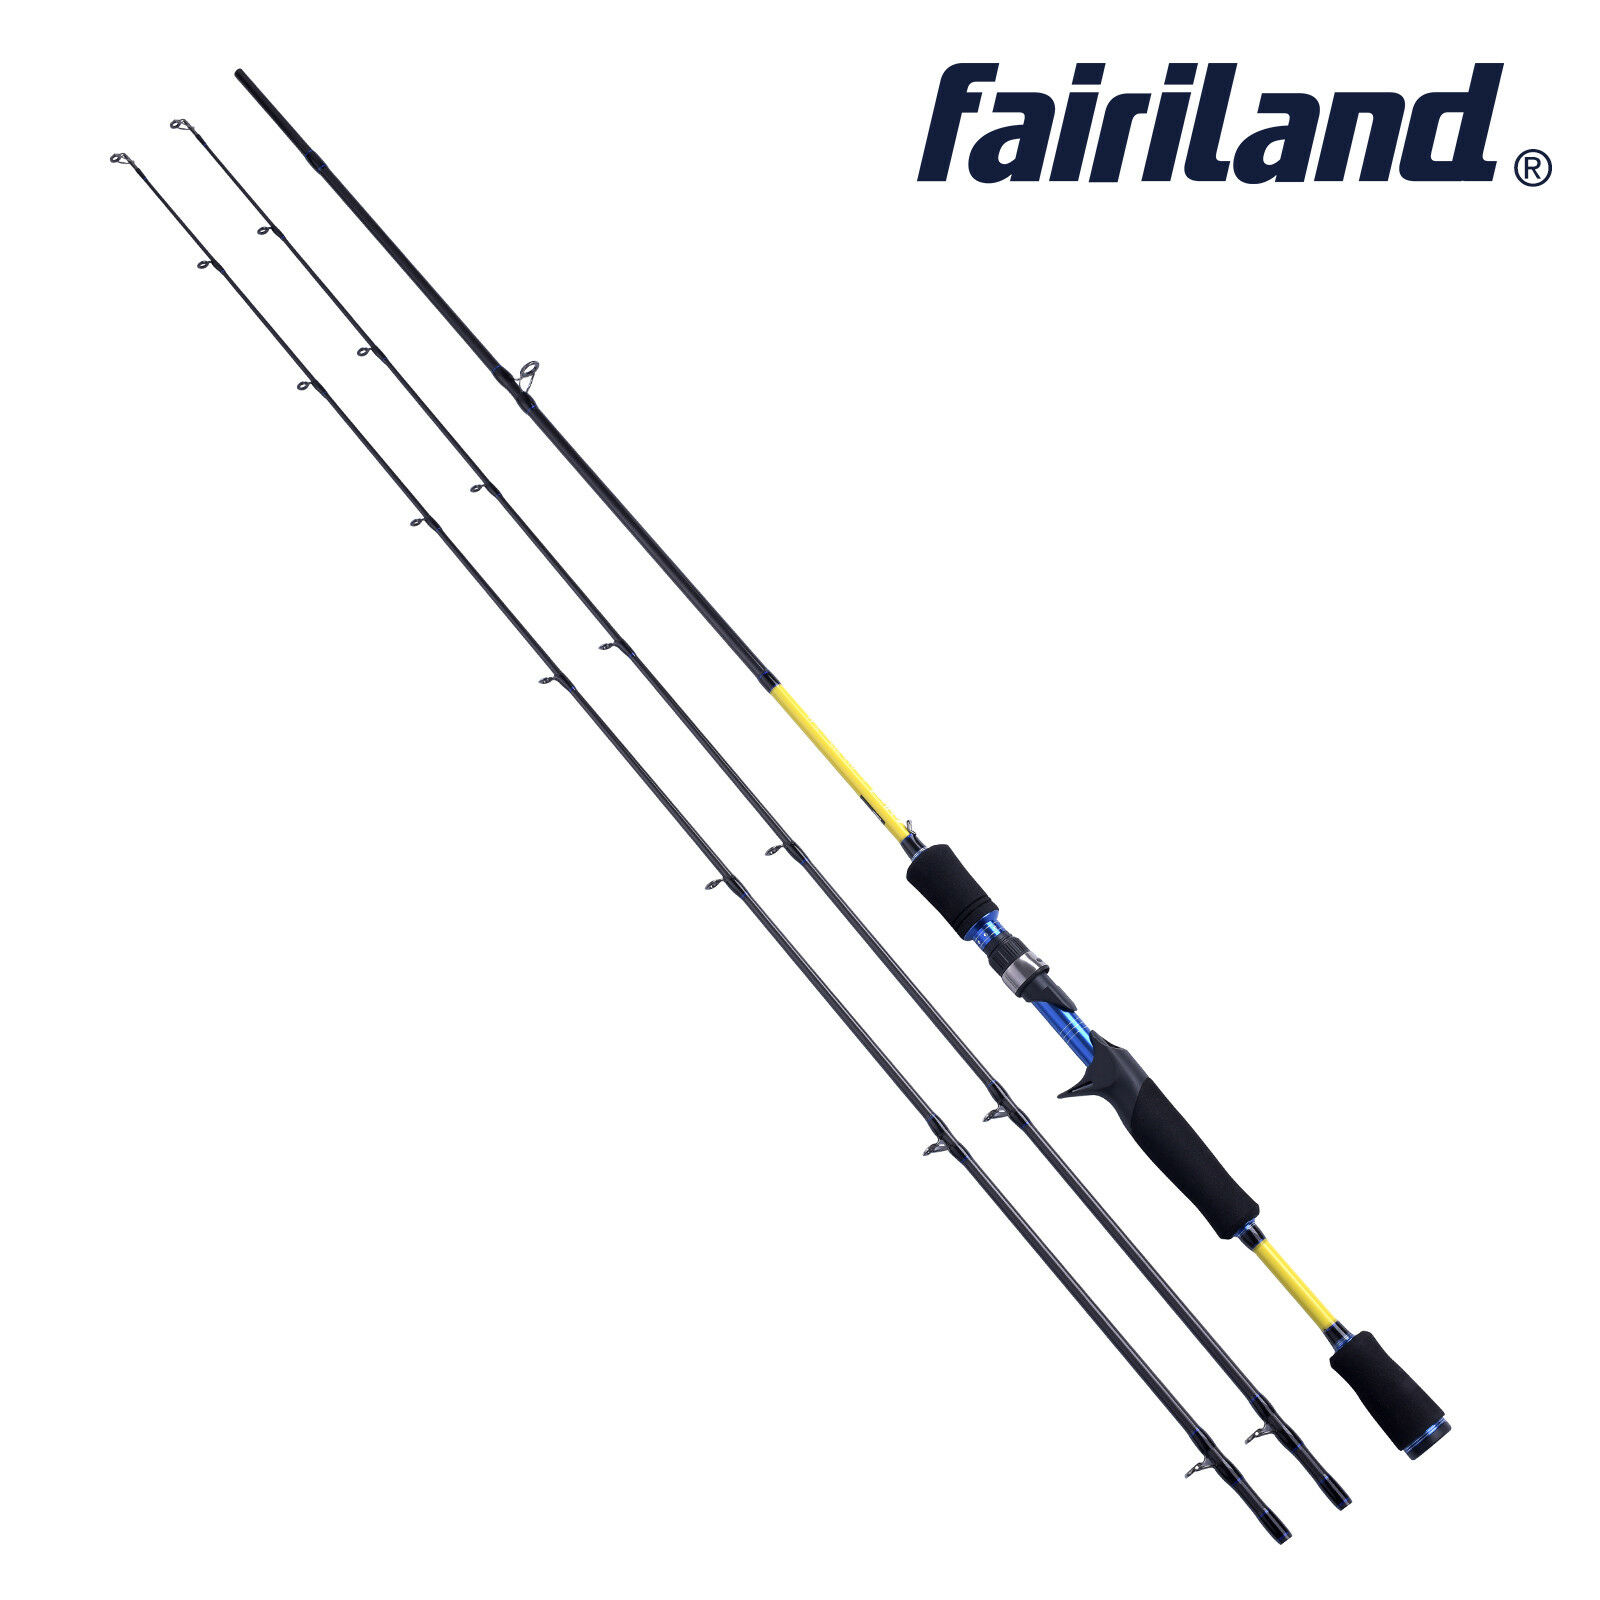 Fairiland 6'/6.6'/7' 2-Sec/with spare tip M/ML  carbon fiber casting fishing rod